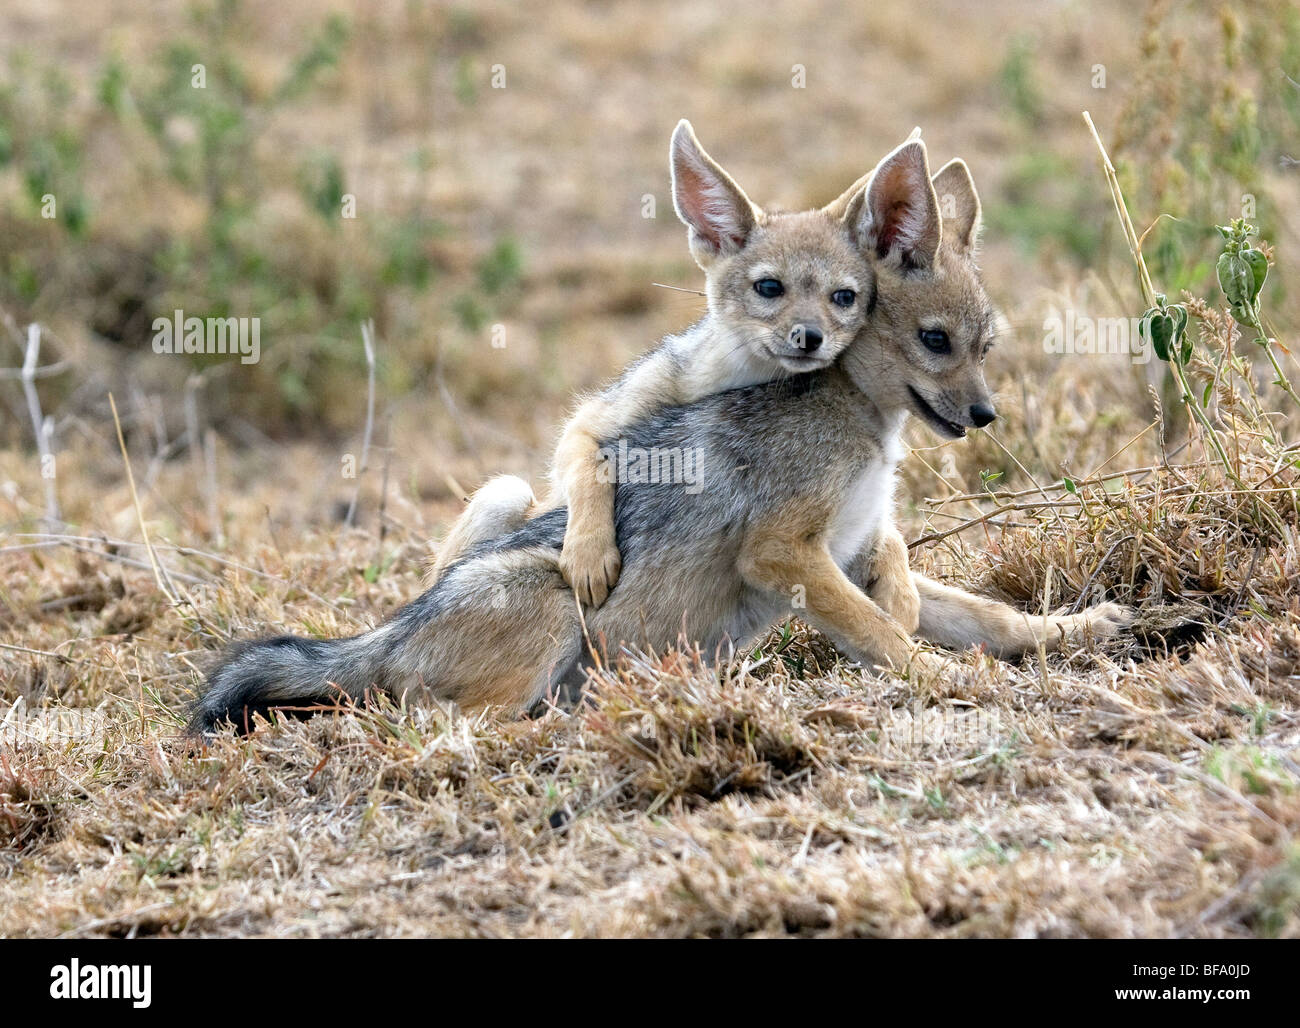 Jackal cubs playing - Stock Image